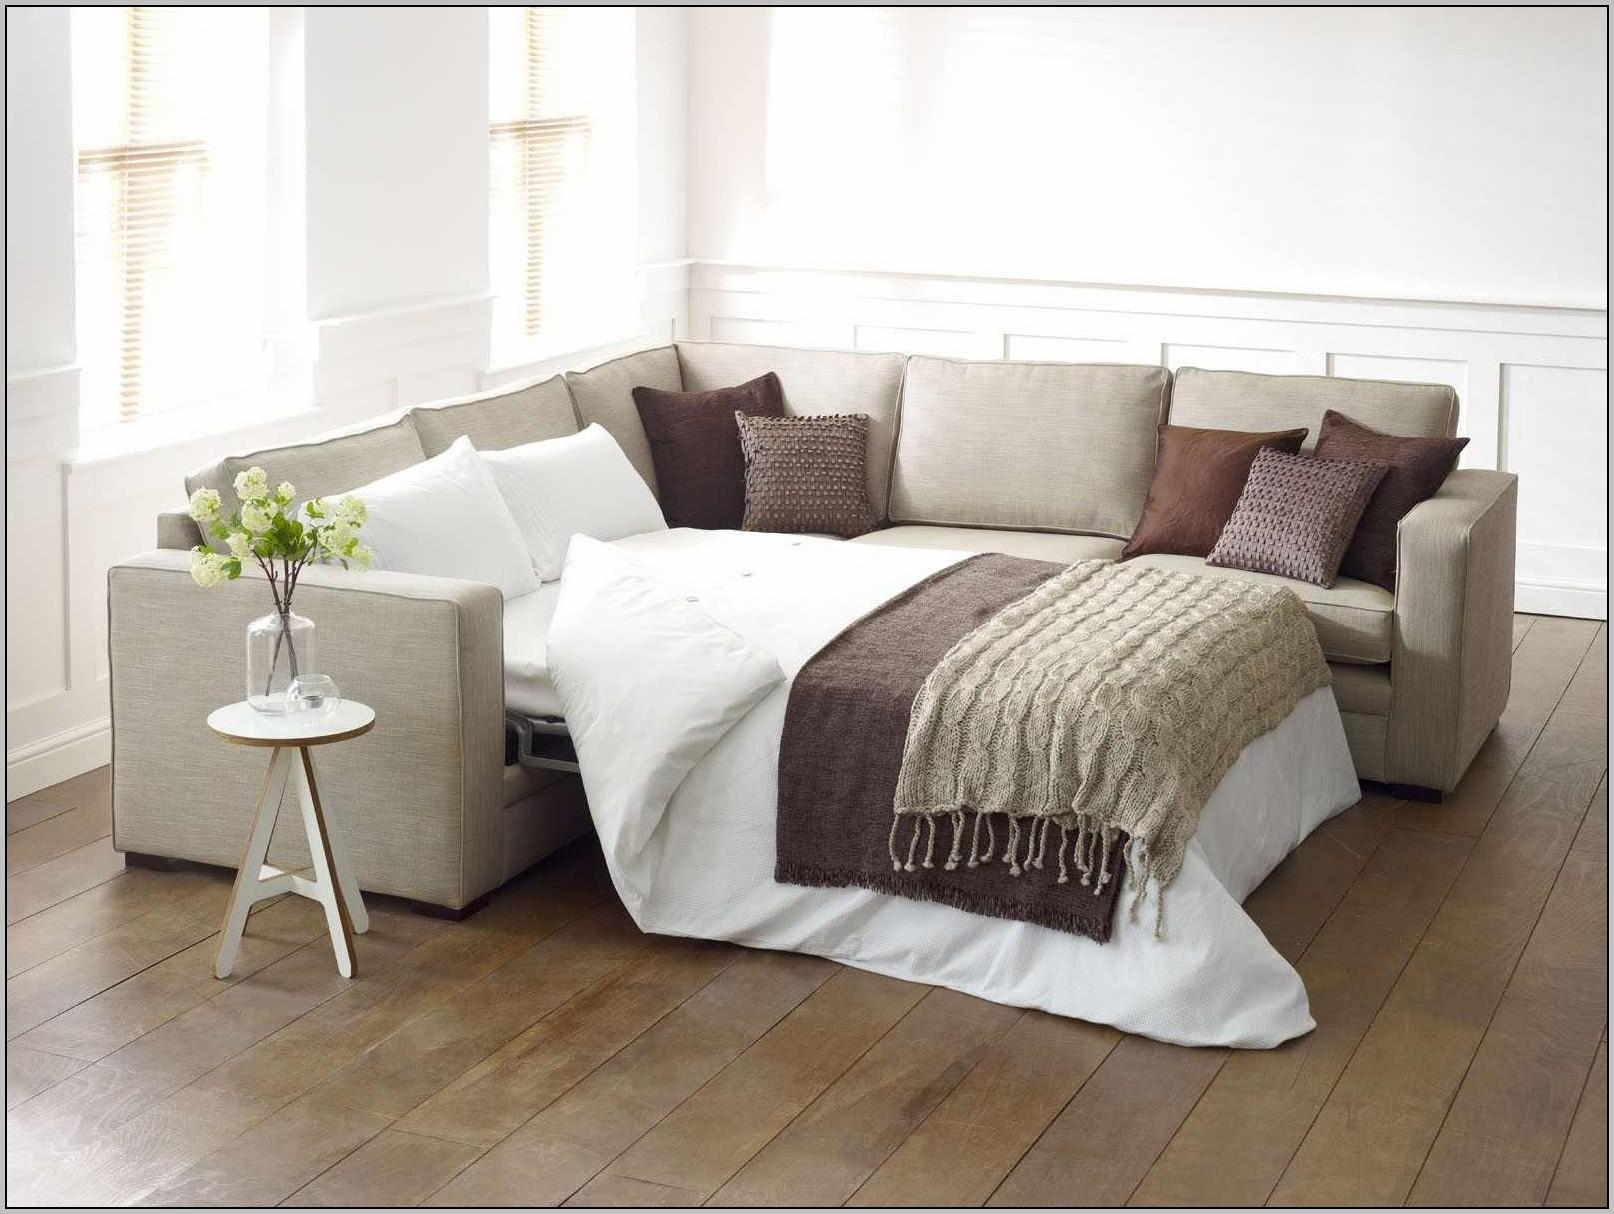 Sleeper Sofa Mattress Cover With Design Ideas 42338 | Kengire Throughout Sleeper Sofas Mattress Covers (View 18 of 20)